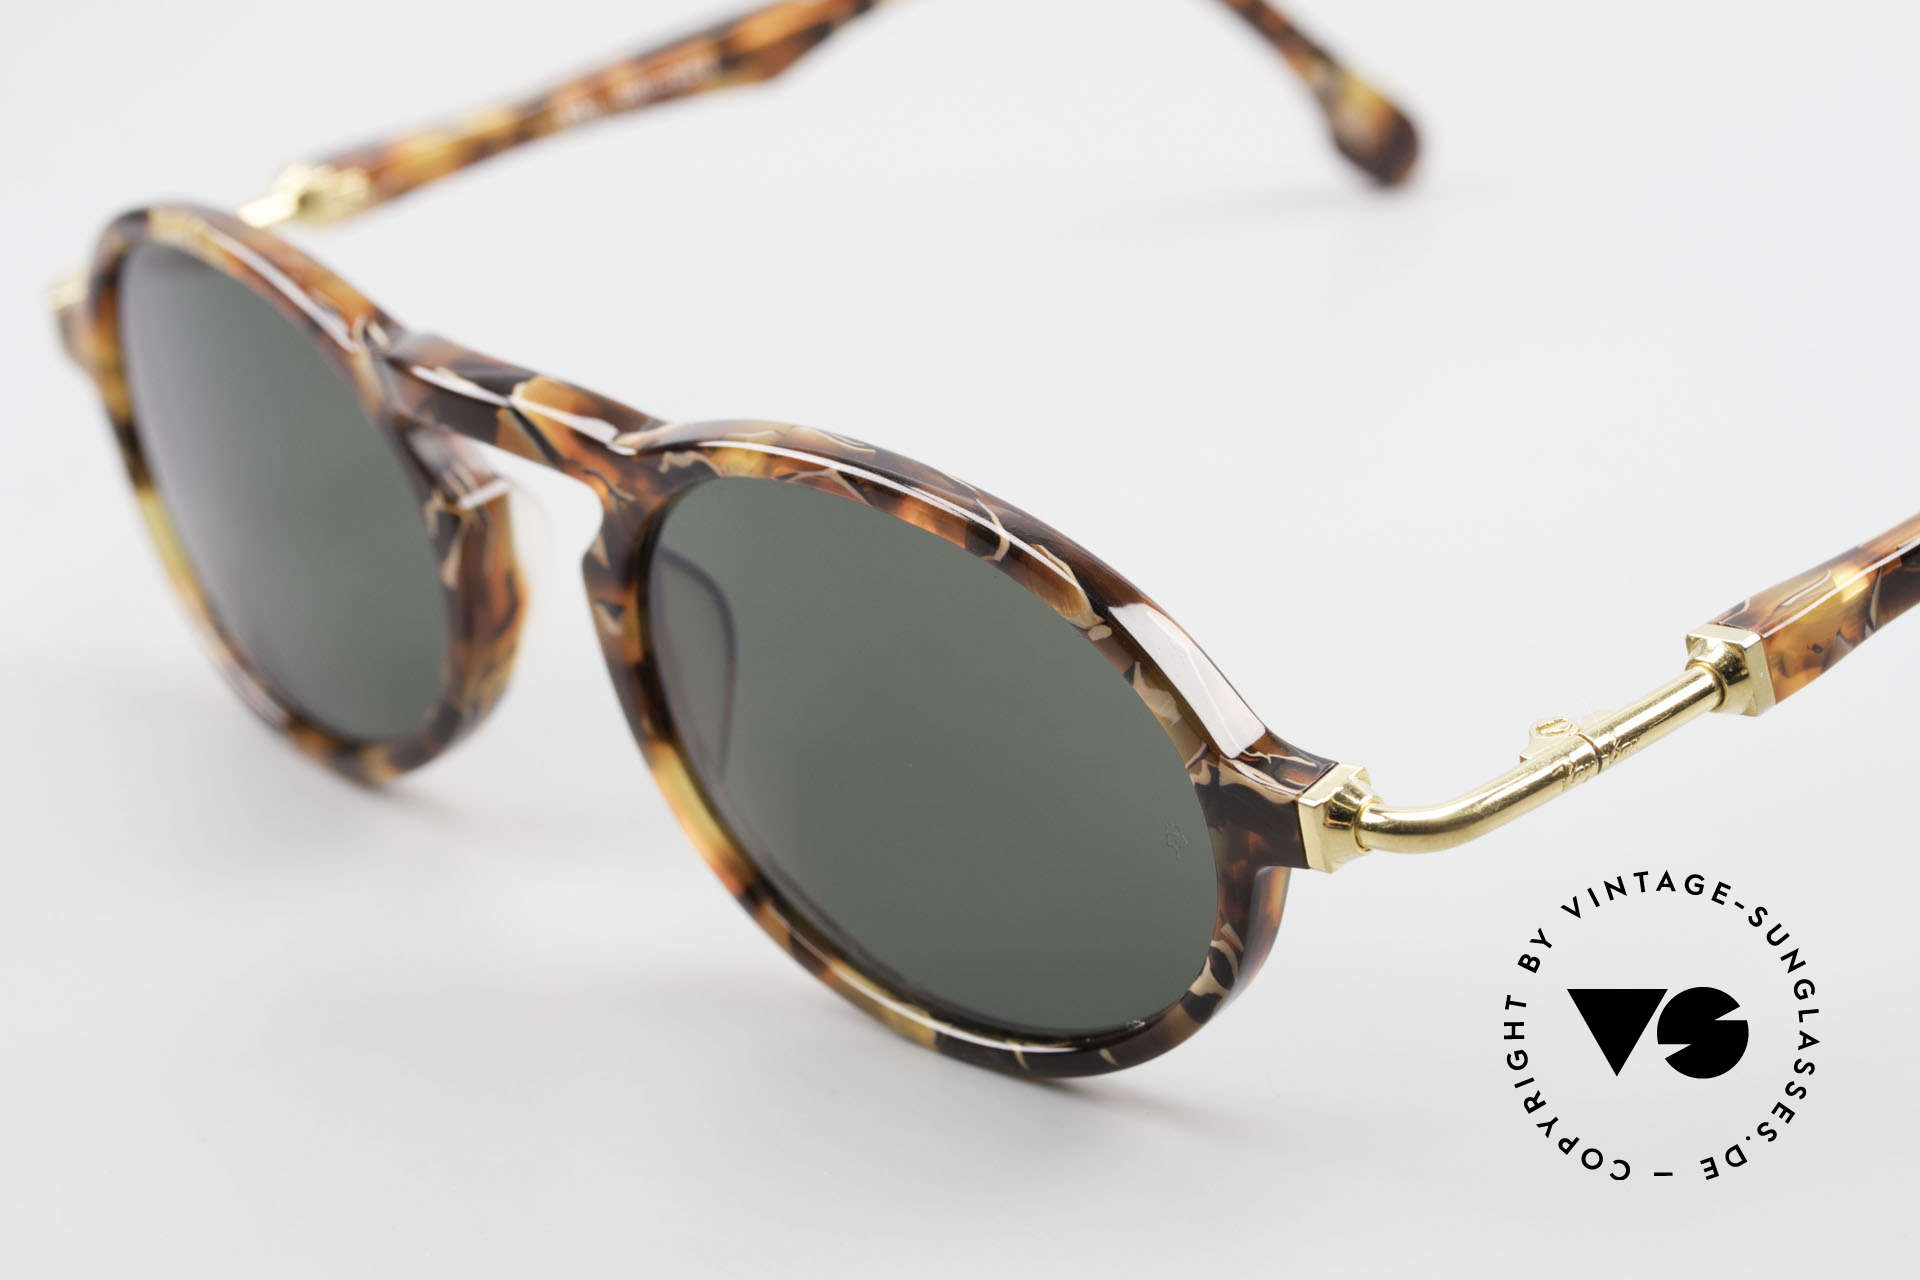 Ray Ban Gatsby 1 DLX B&L USA Original Ray-Ban 90's, unworn, new old stock incl. original case and packing, Made for Men and Women